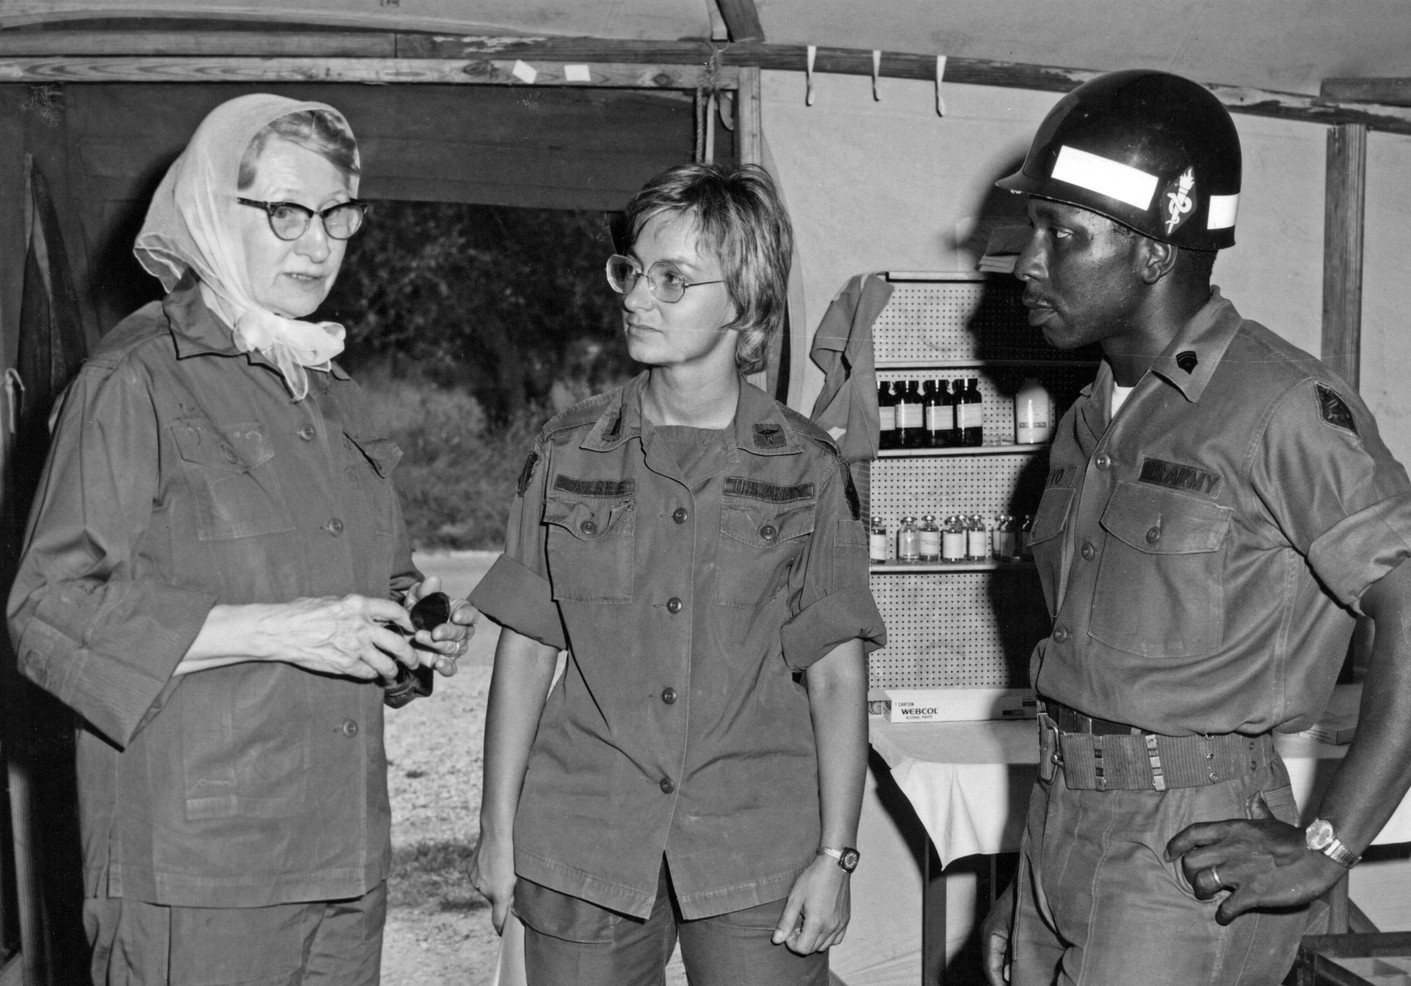 In 1972, Sr. Charles Marie was appointed to the Defense Advisory Committee on Women in the Service by U.S .Secretary of Defense Melvin Laird. Here, she is advising on the well-being of military women at Camp Bullis, Texas.In retirement, Sr. Charles Marie developed a clinic for retired Sisters living in the Motherhouse. She also wrote the history of the mission in Peru and volunteered in the congregation's archives.